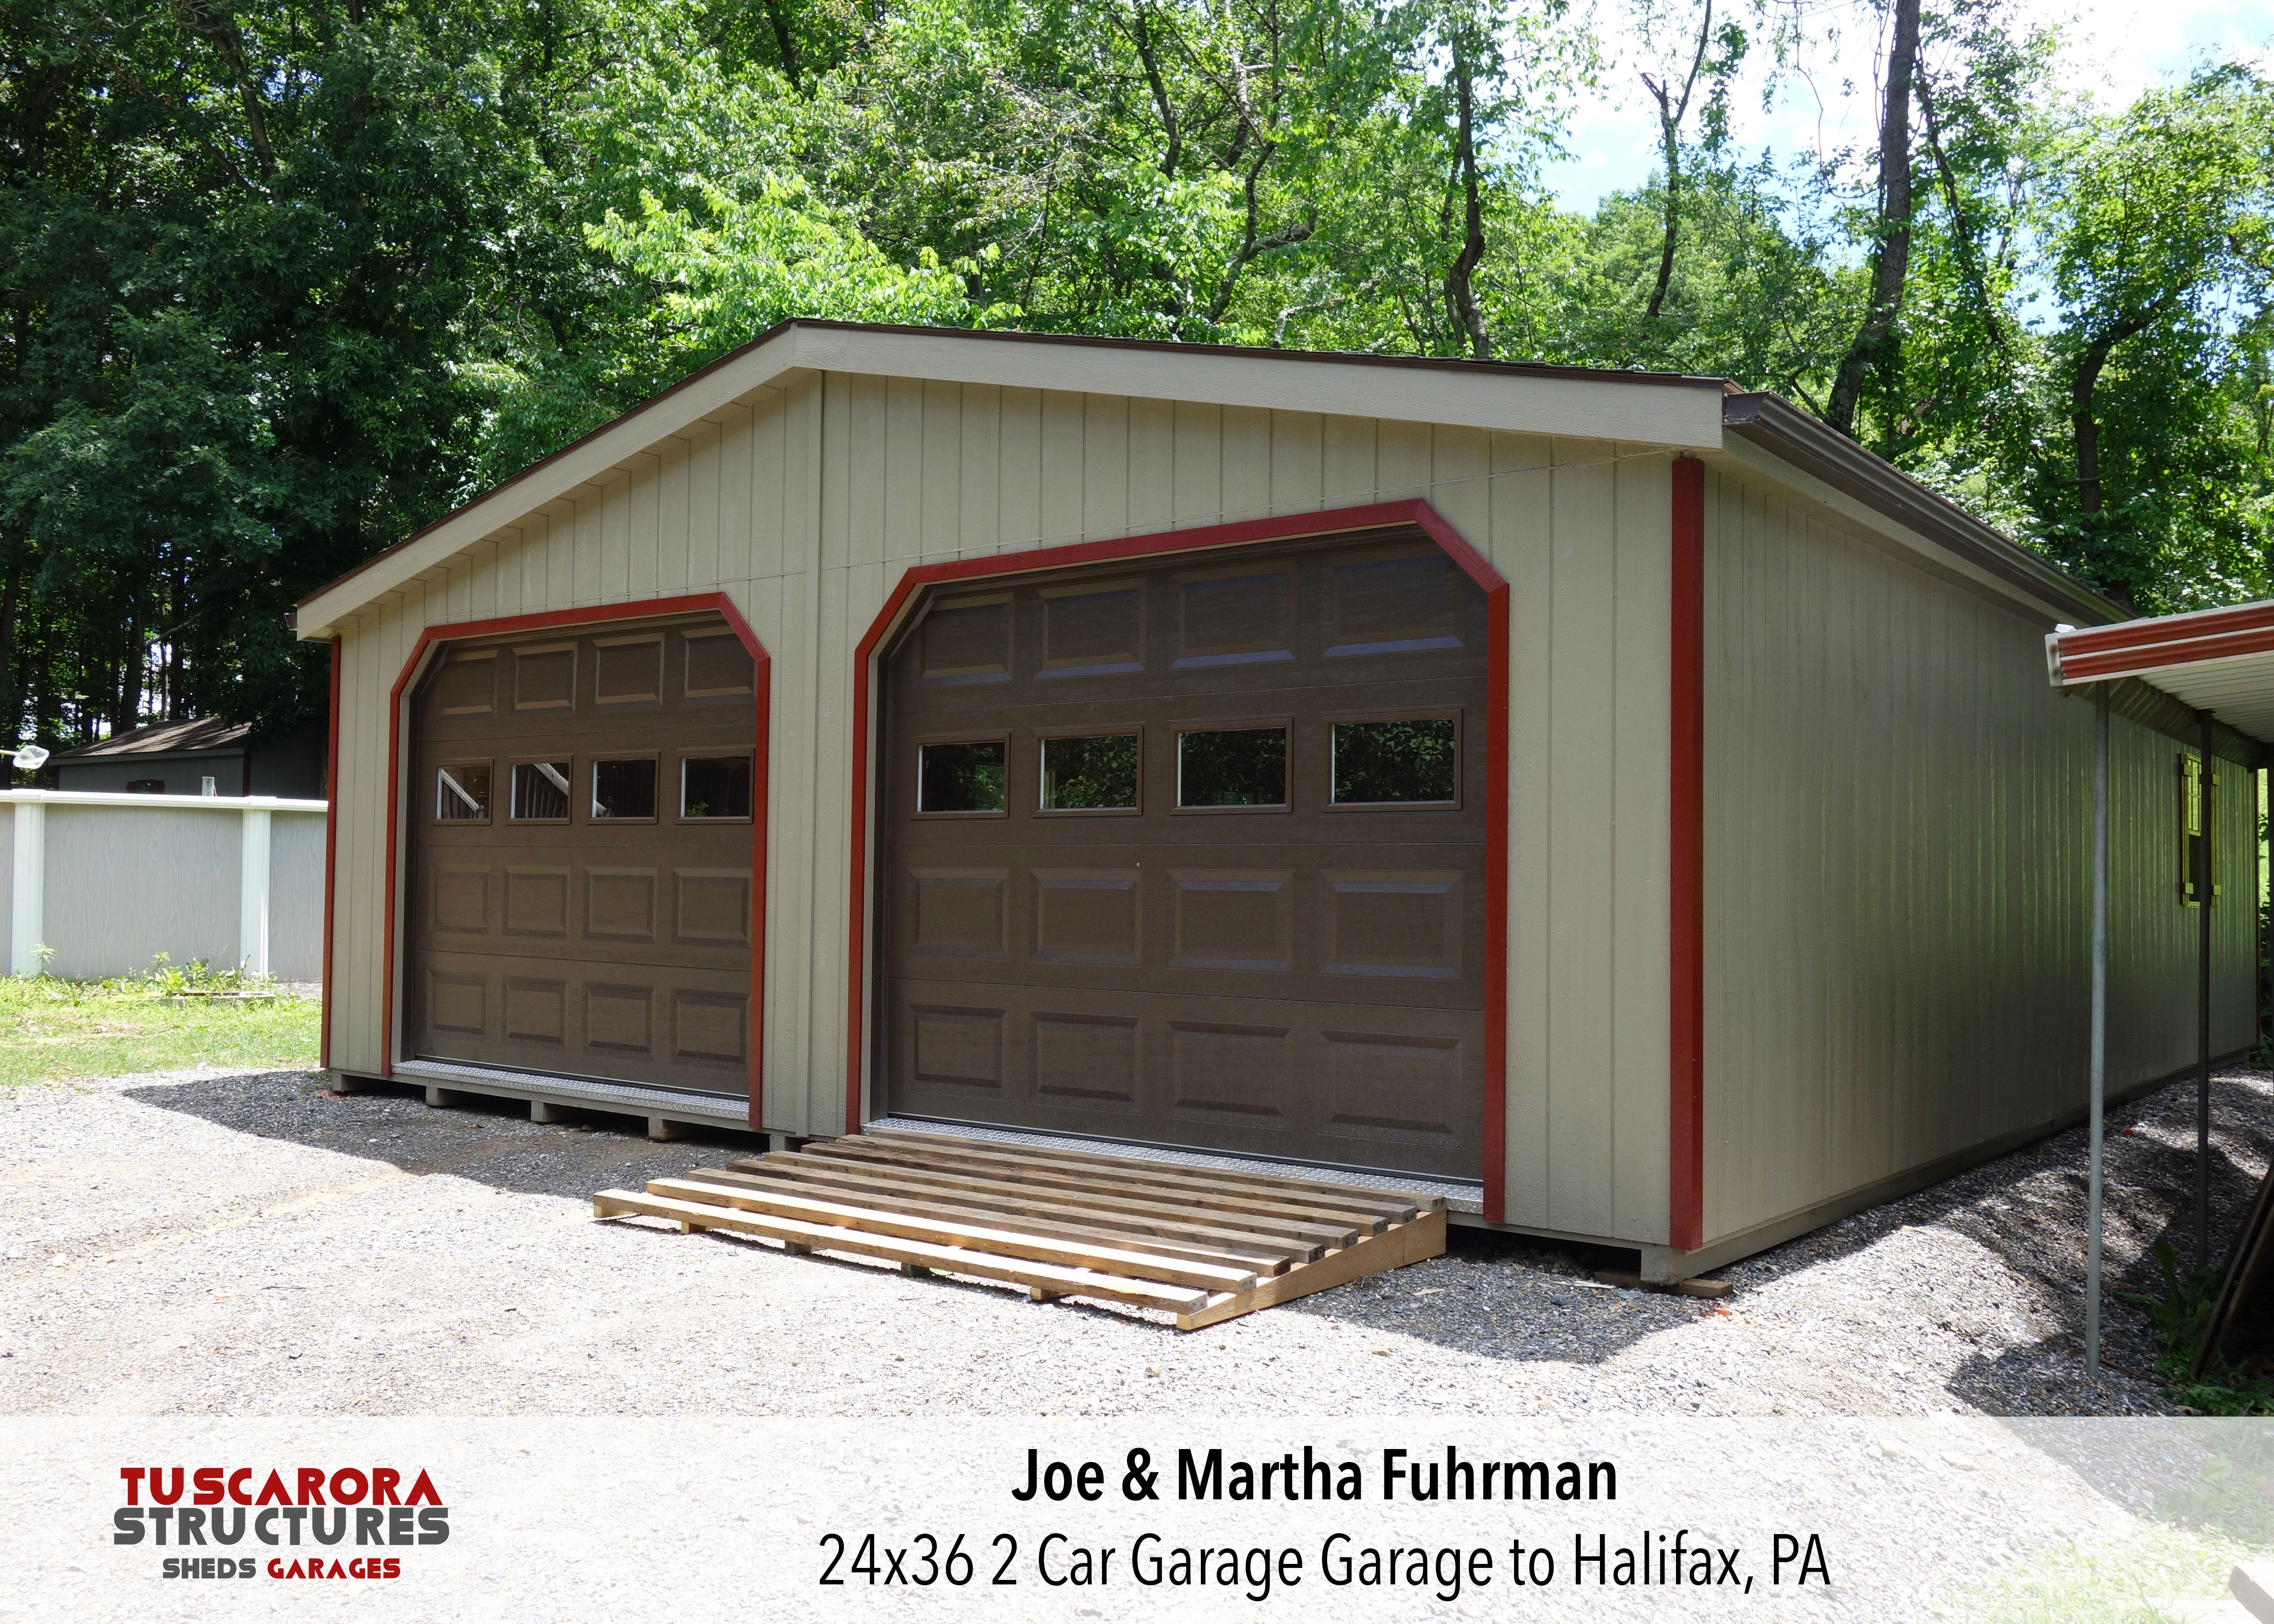 A 24x36 2 Car Garage We Built And Assembled For Joe Martha Fuhrman In Halifax Pa Garage Plans Shed Retail Store Interior Design